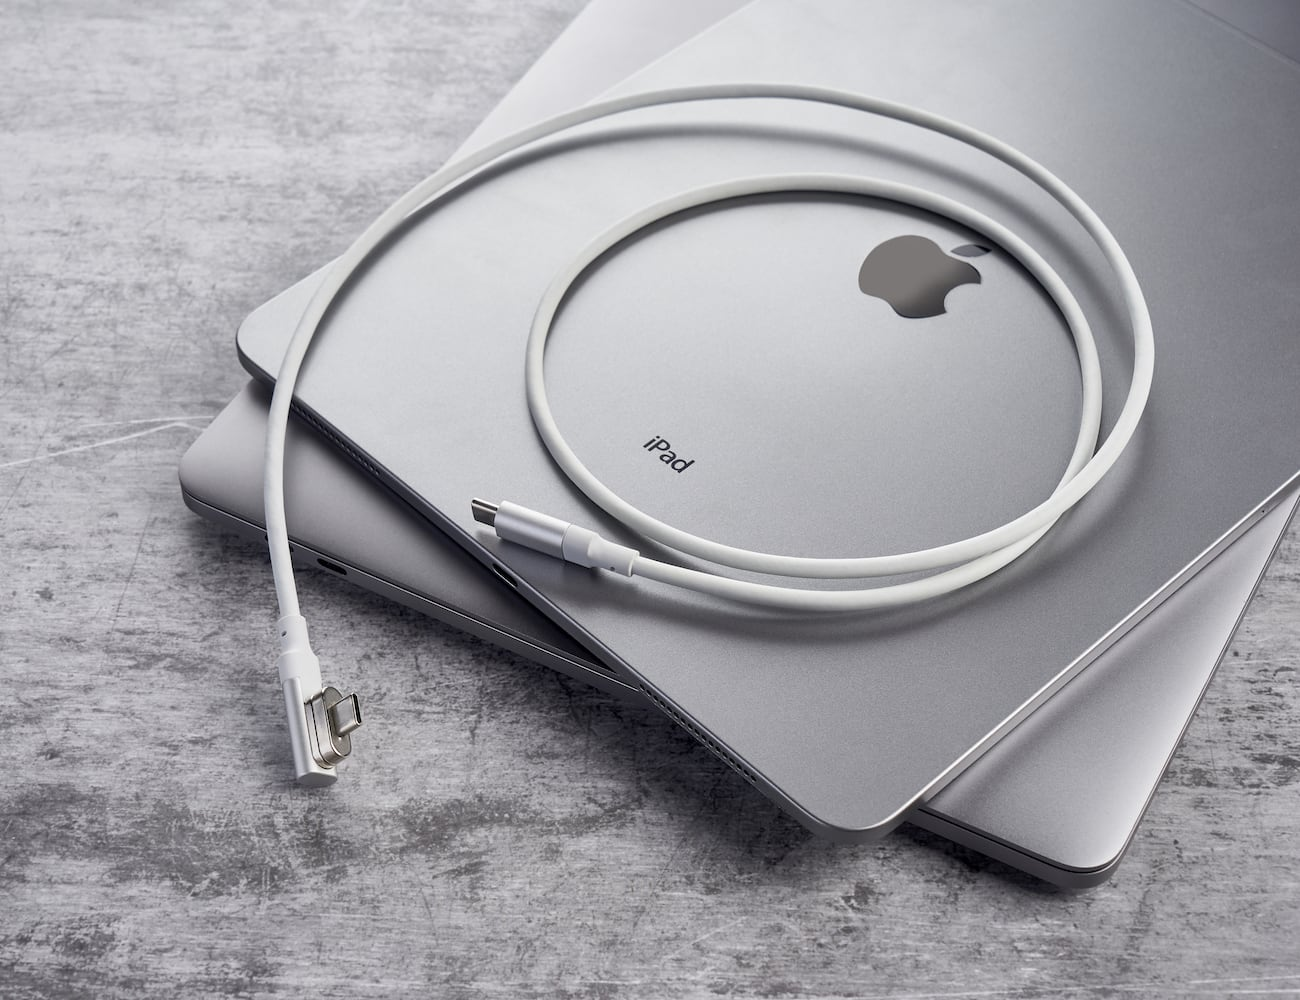 Magabolt MagX USB-C Magnetic Cable transfers data incredibly fast